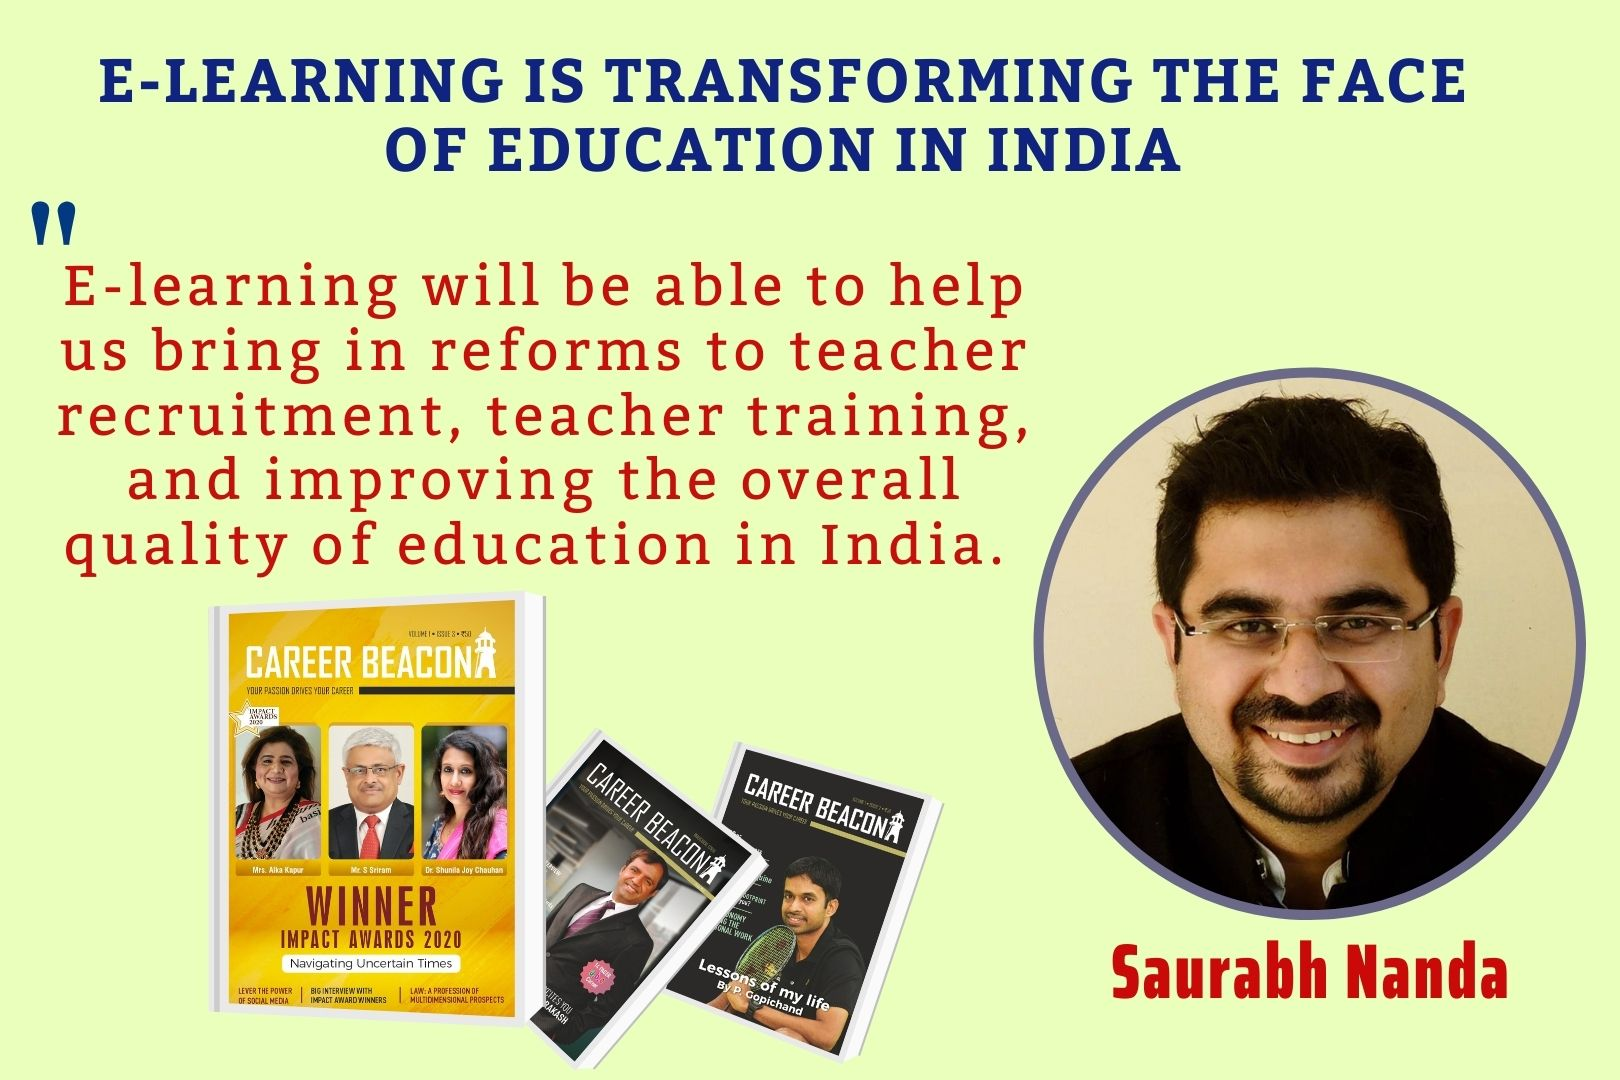 E-Learning is Transforming the Face of Education in India